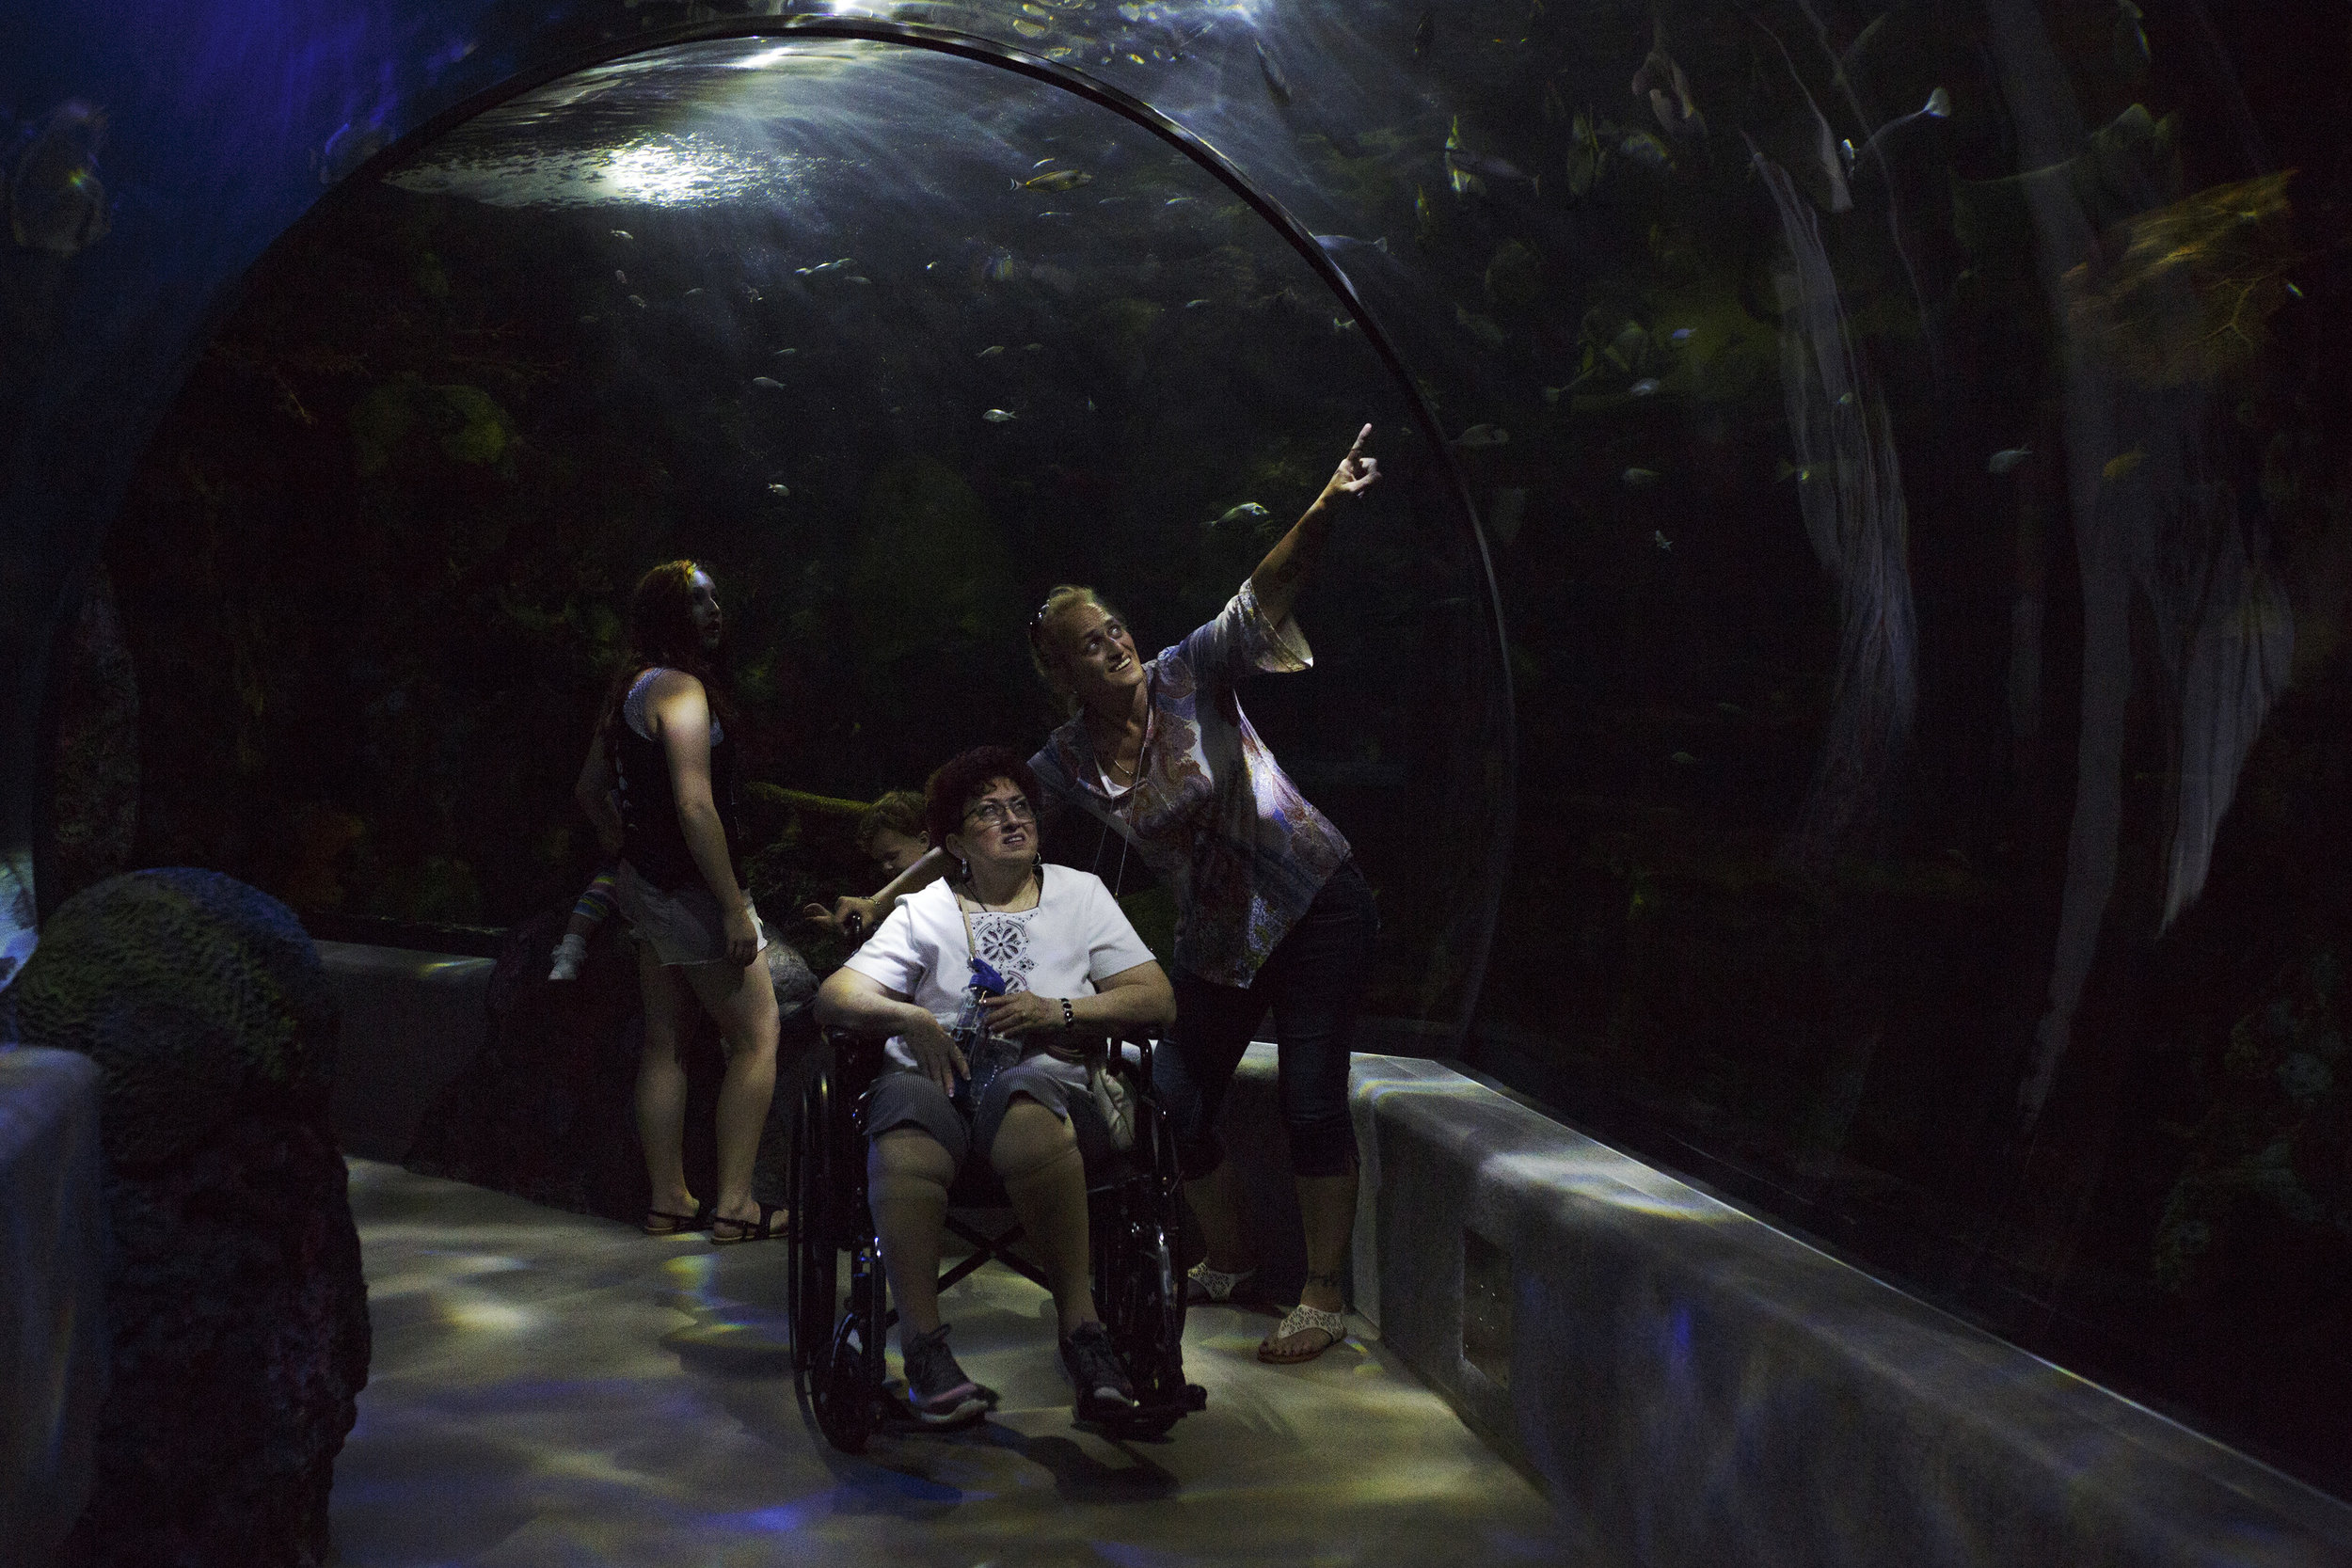 Kim Rivera, right, and Charlotte Stanley point towards the marine life in the Red Sea at the Virginia Aquarium & Marine Science Center in Virginia Beach, Virginia.